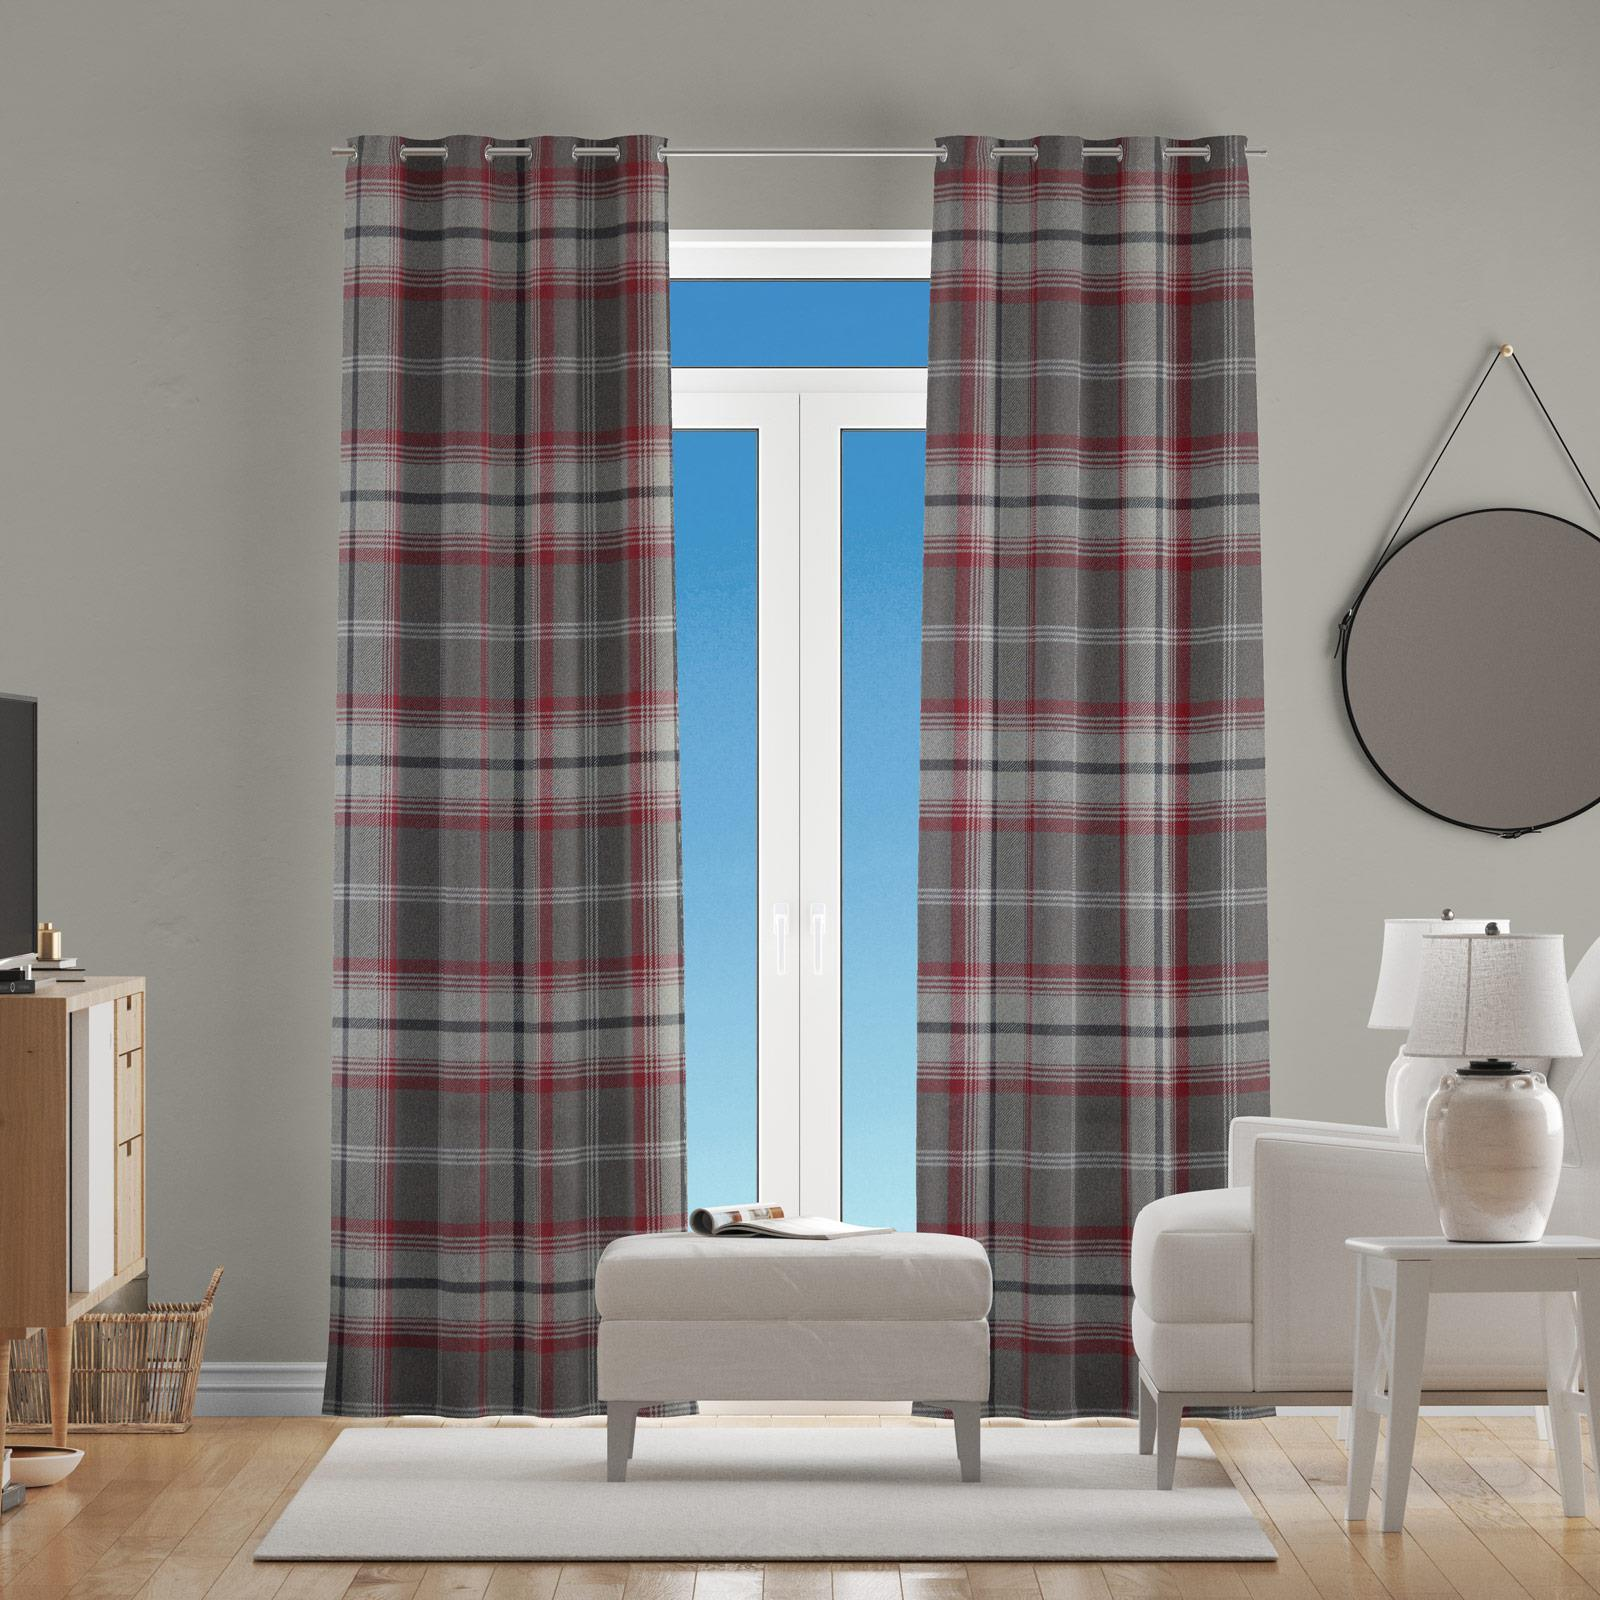 Hestia Rosso Made To Measure Curtains -  - Ideal Textiles